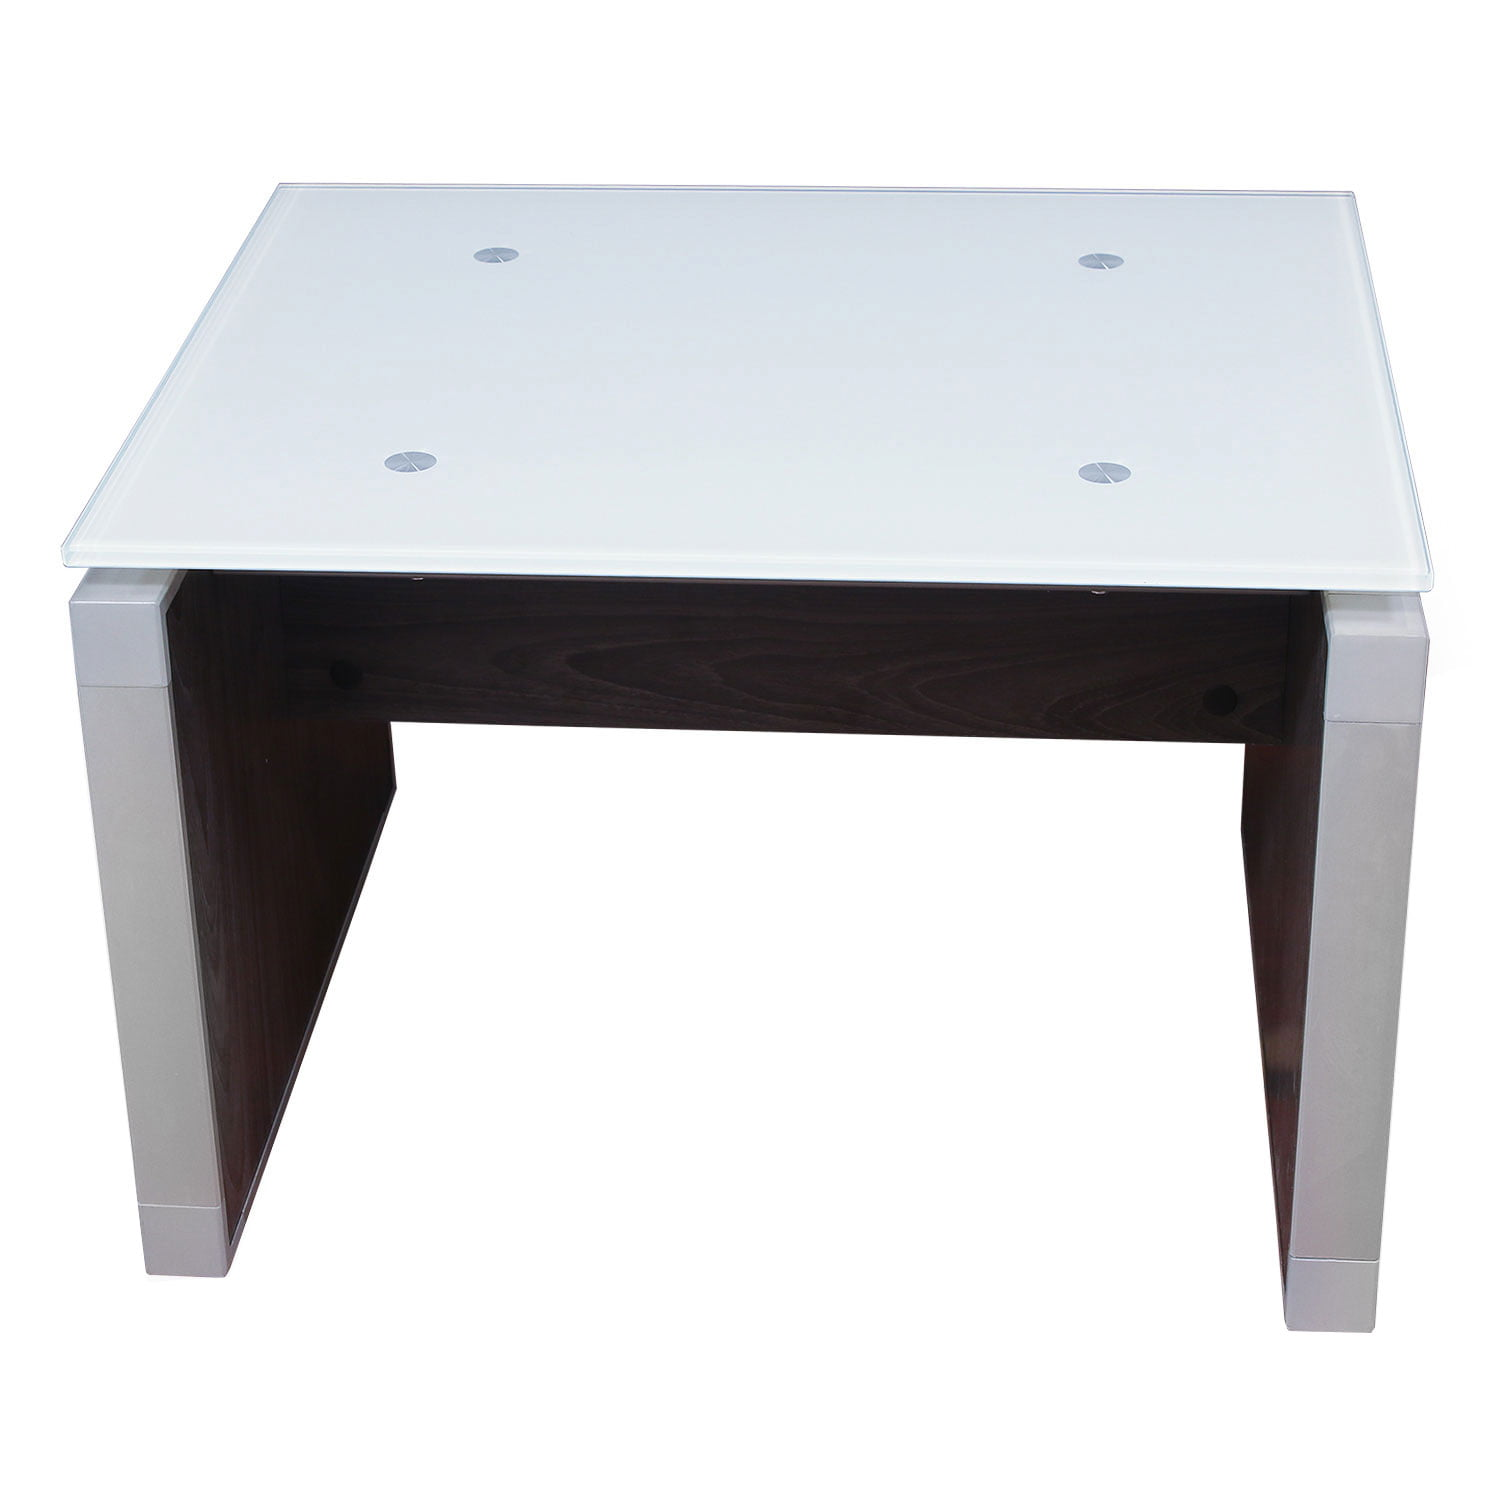 Manhattan 24x24 Glass Top End Table, Cashmere Gray